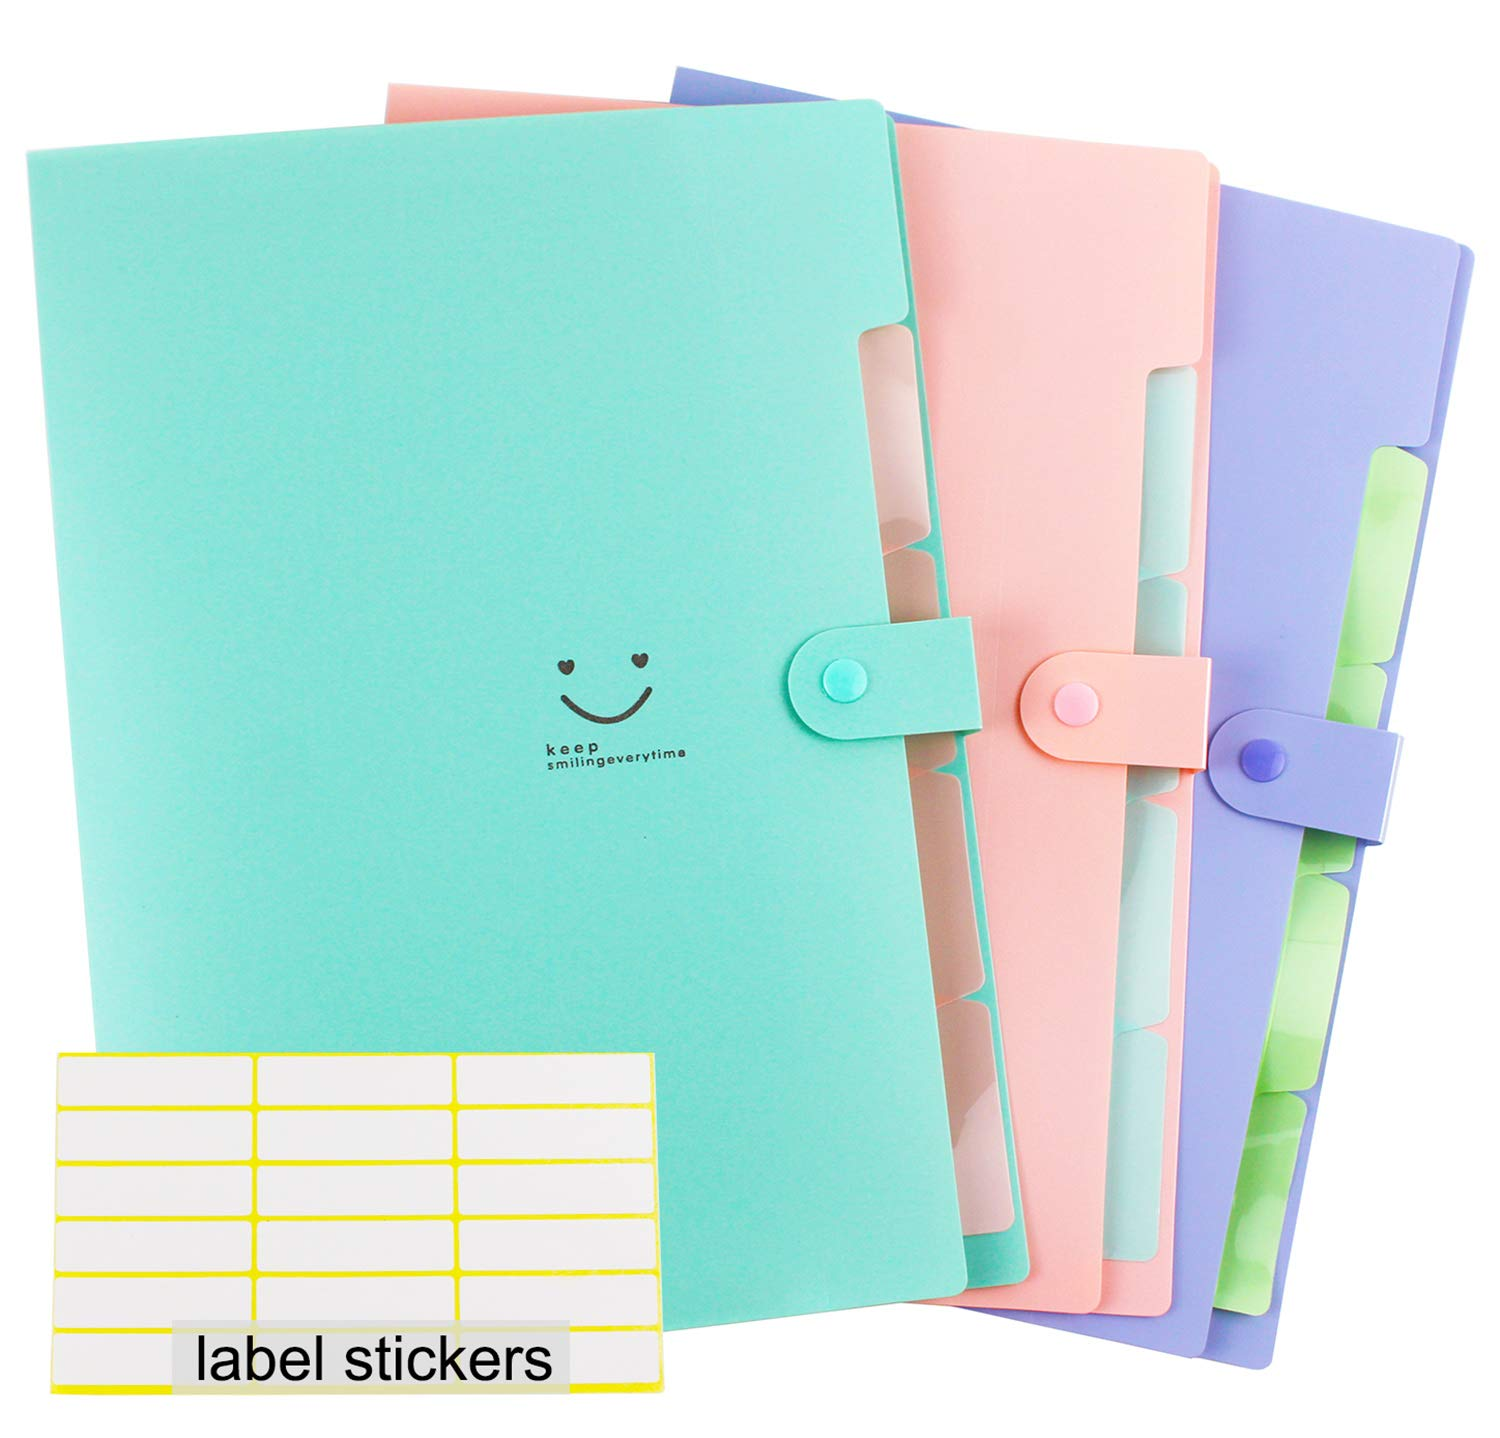 Expanding File Folder Letter Size 5 Pockets A4 Accordion File Organizer Snap Closure with File Folder Labels for Business/Office/School Set of 3(Pink,Teal,Purple)